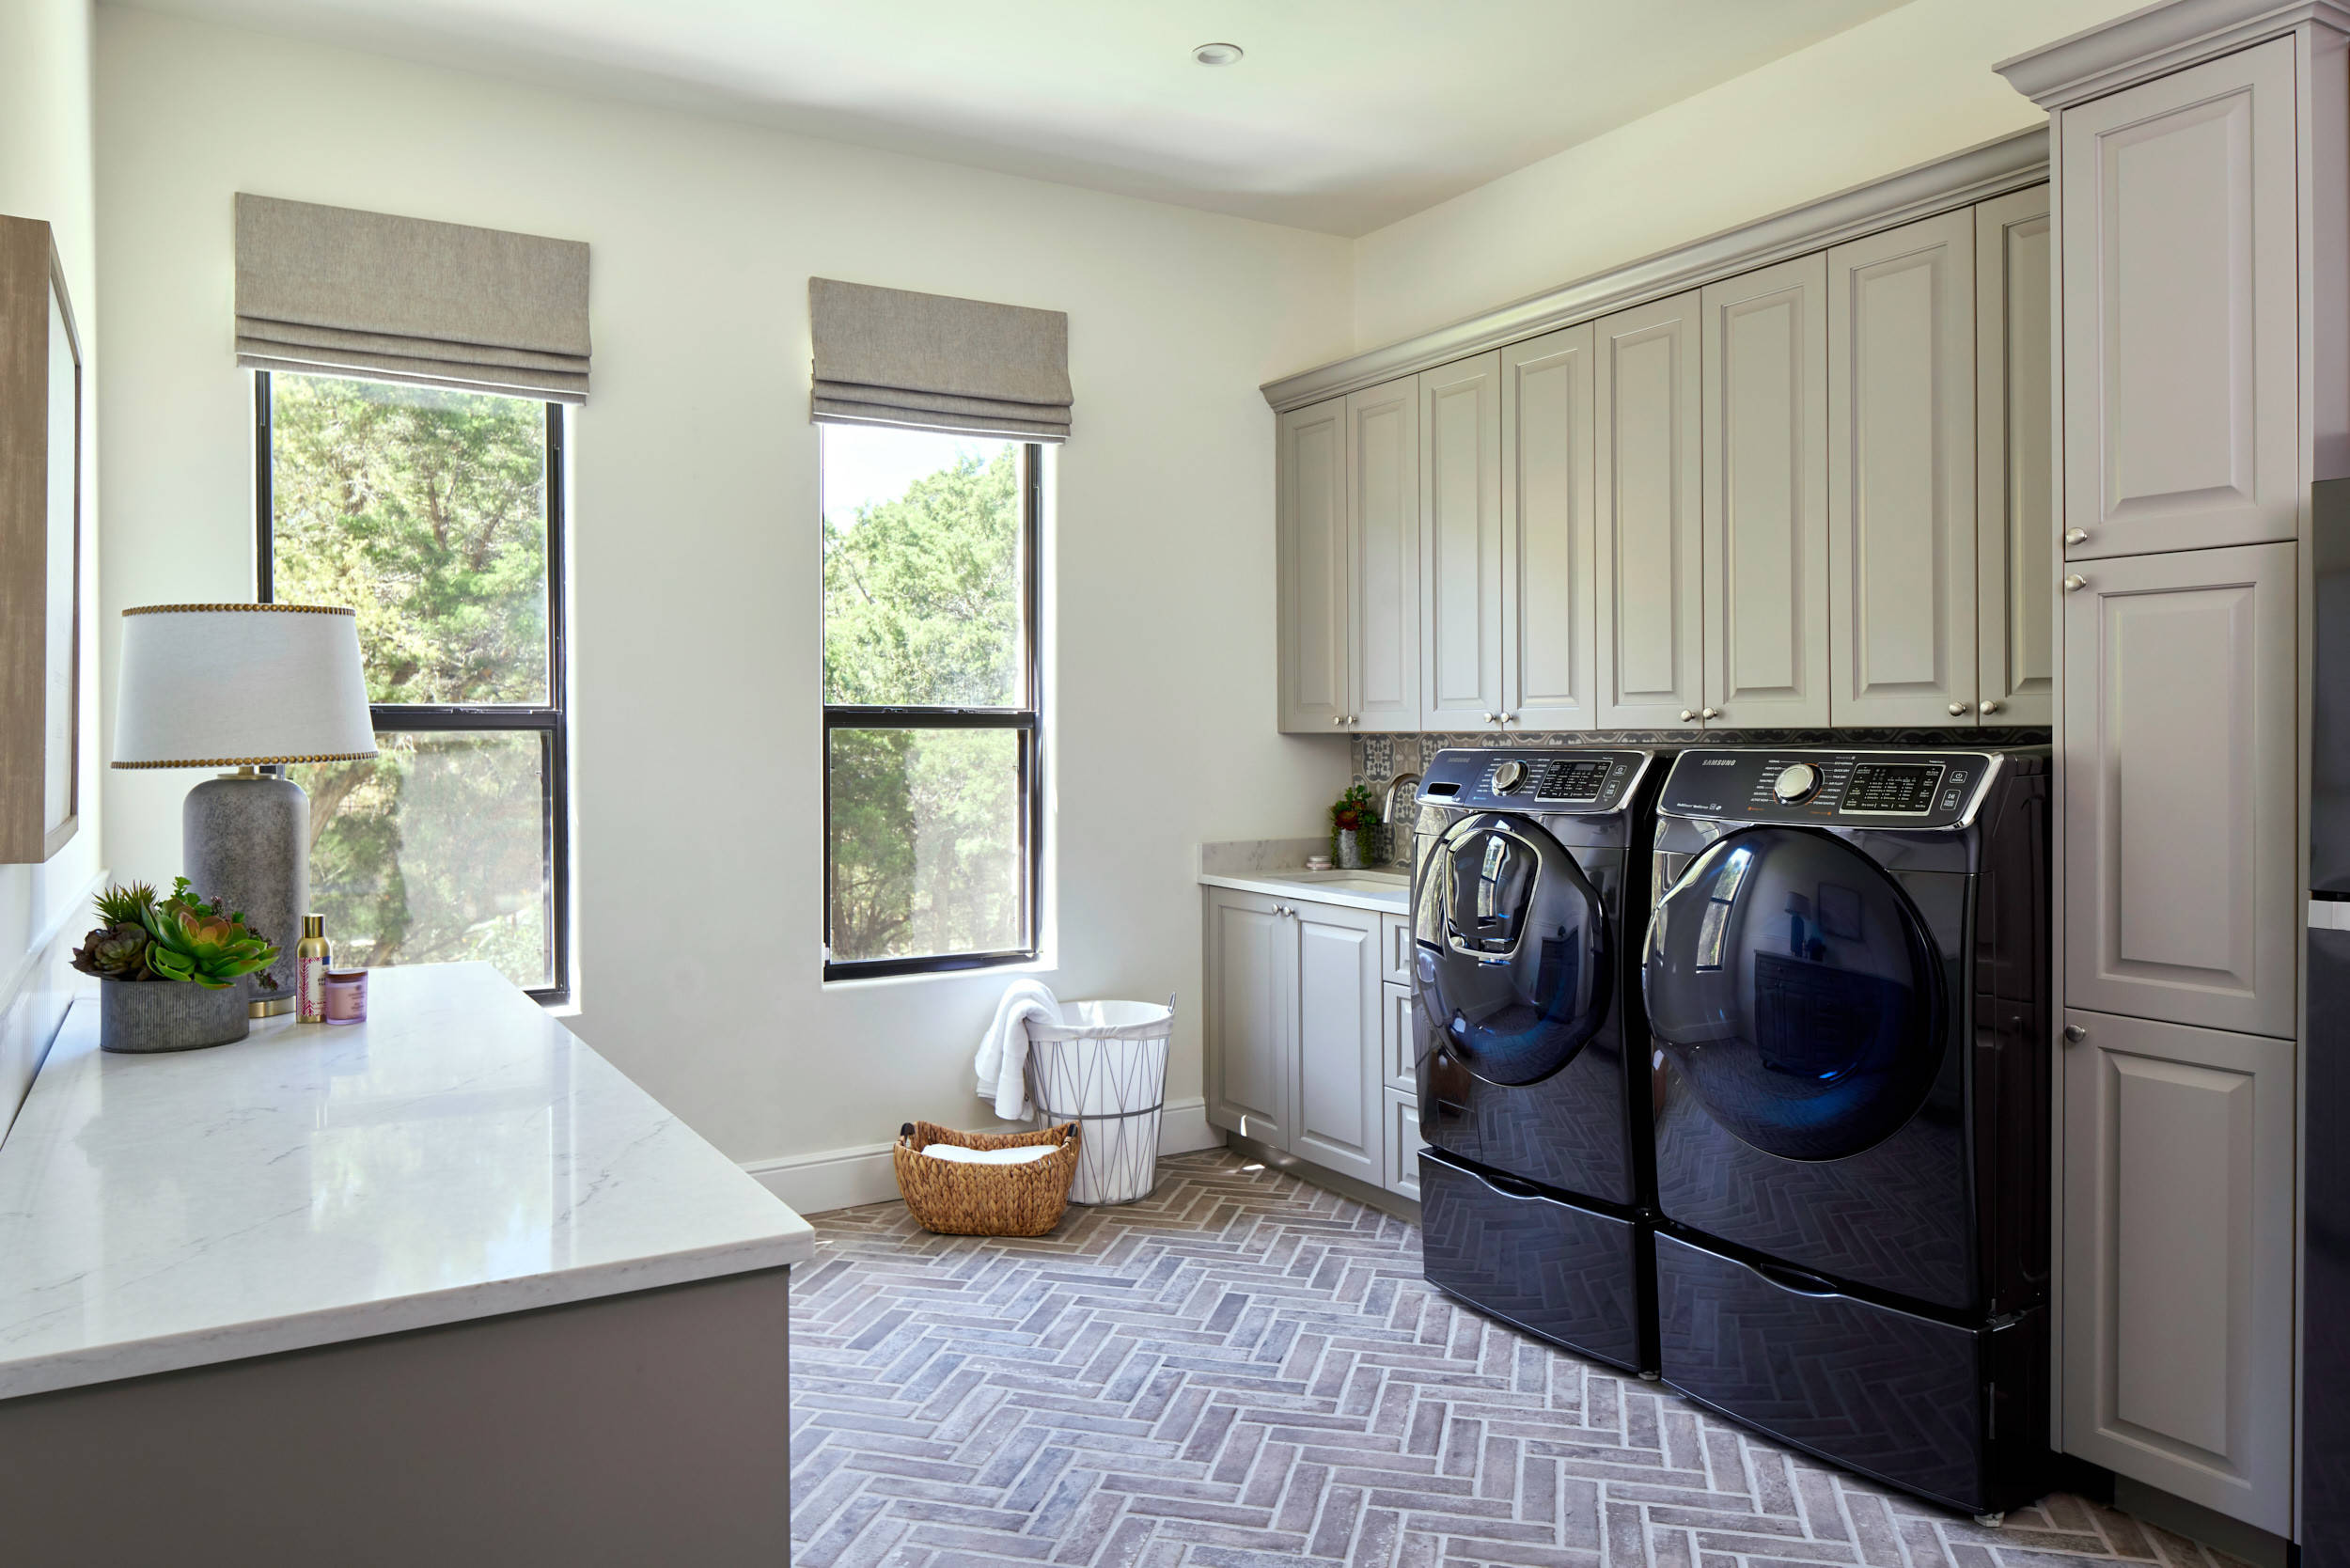 17 Beautiful Galley Laundry Room Pictures & Ideas - September